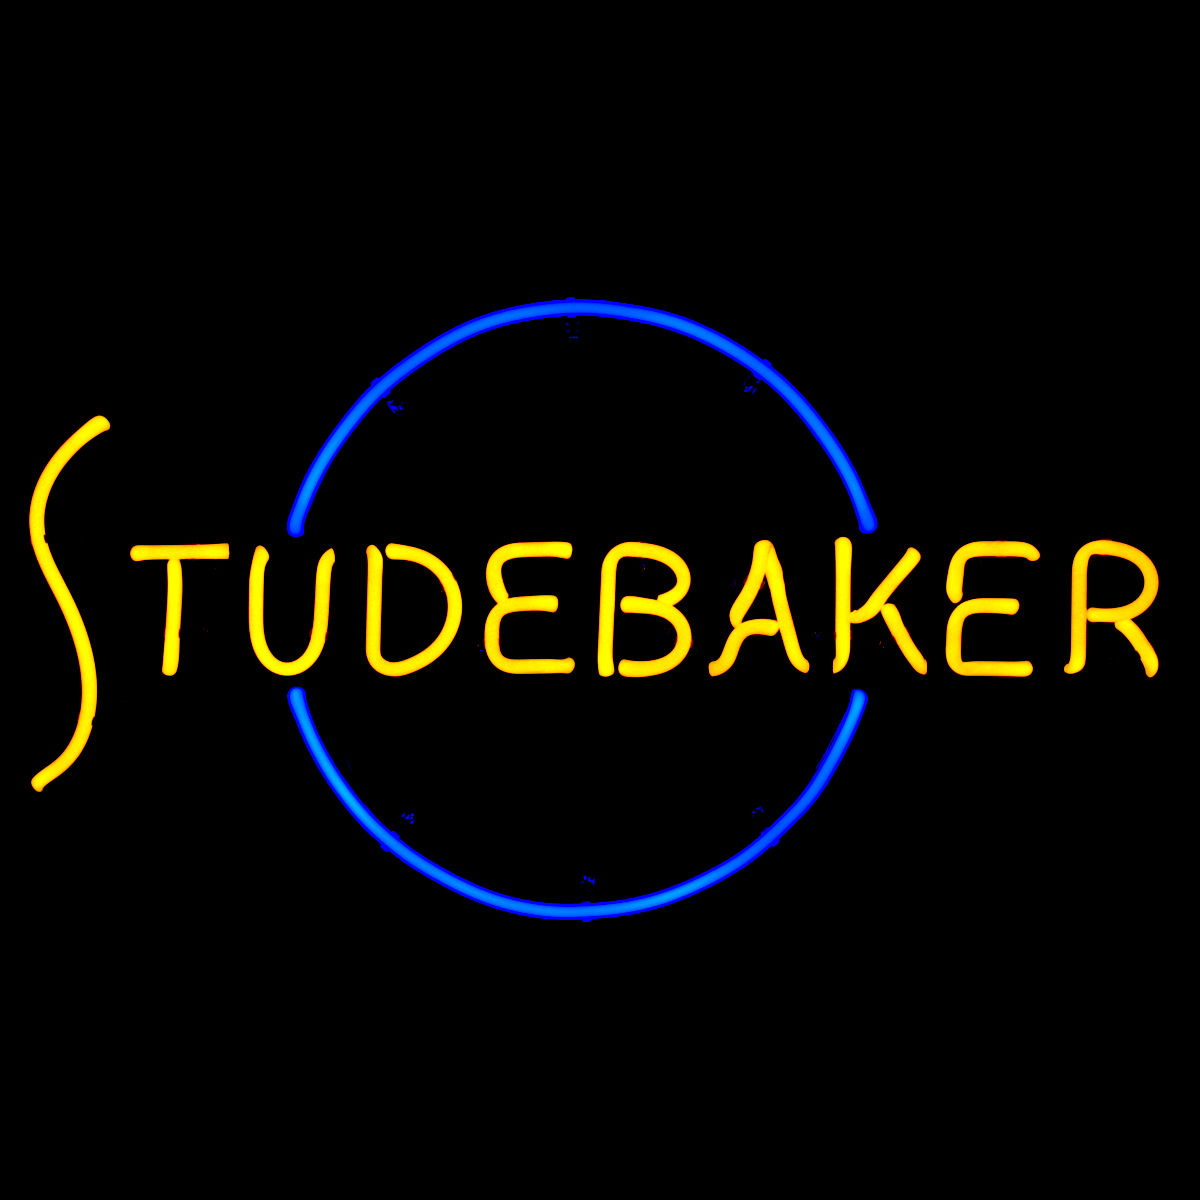 Studebaker Neon Signs hand-blown by John Barton - former Studebaker Packard New Car Dealer - BartonNeonMagic.com